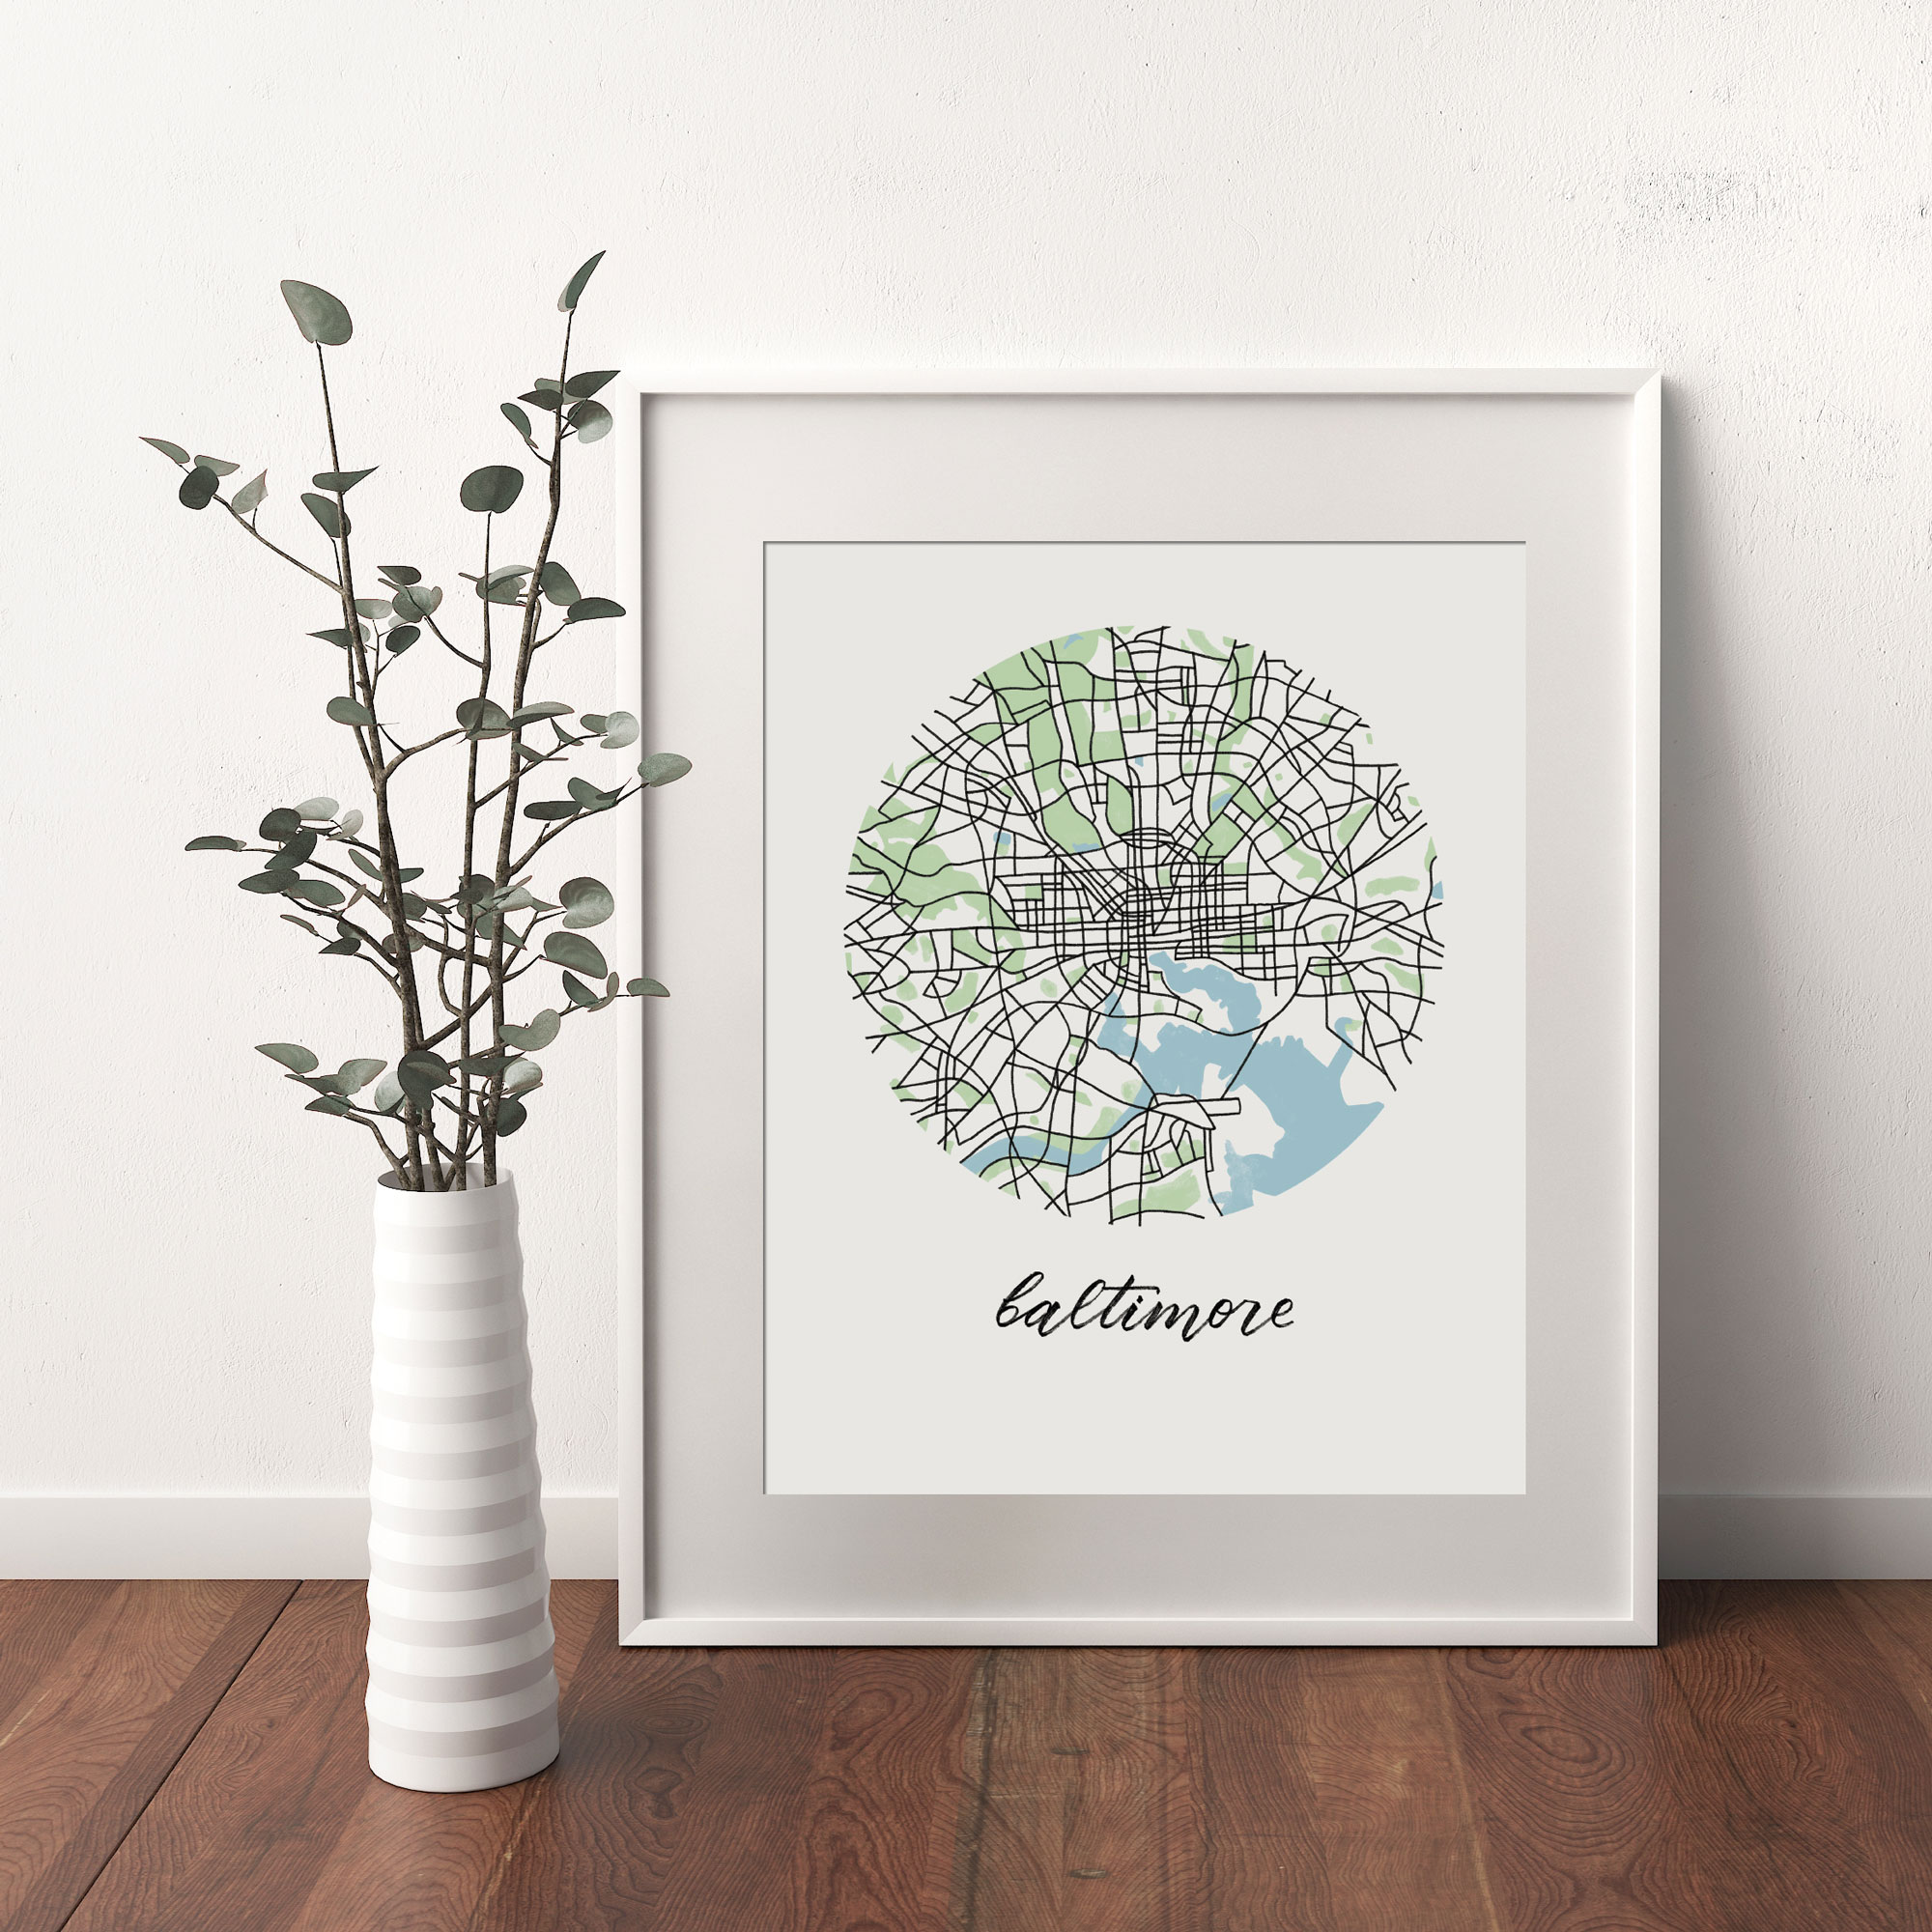 Baltimore Map print framed and leaning on white wall next to dried leaves in a vase